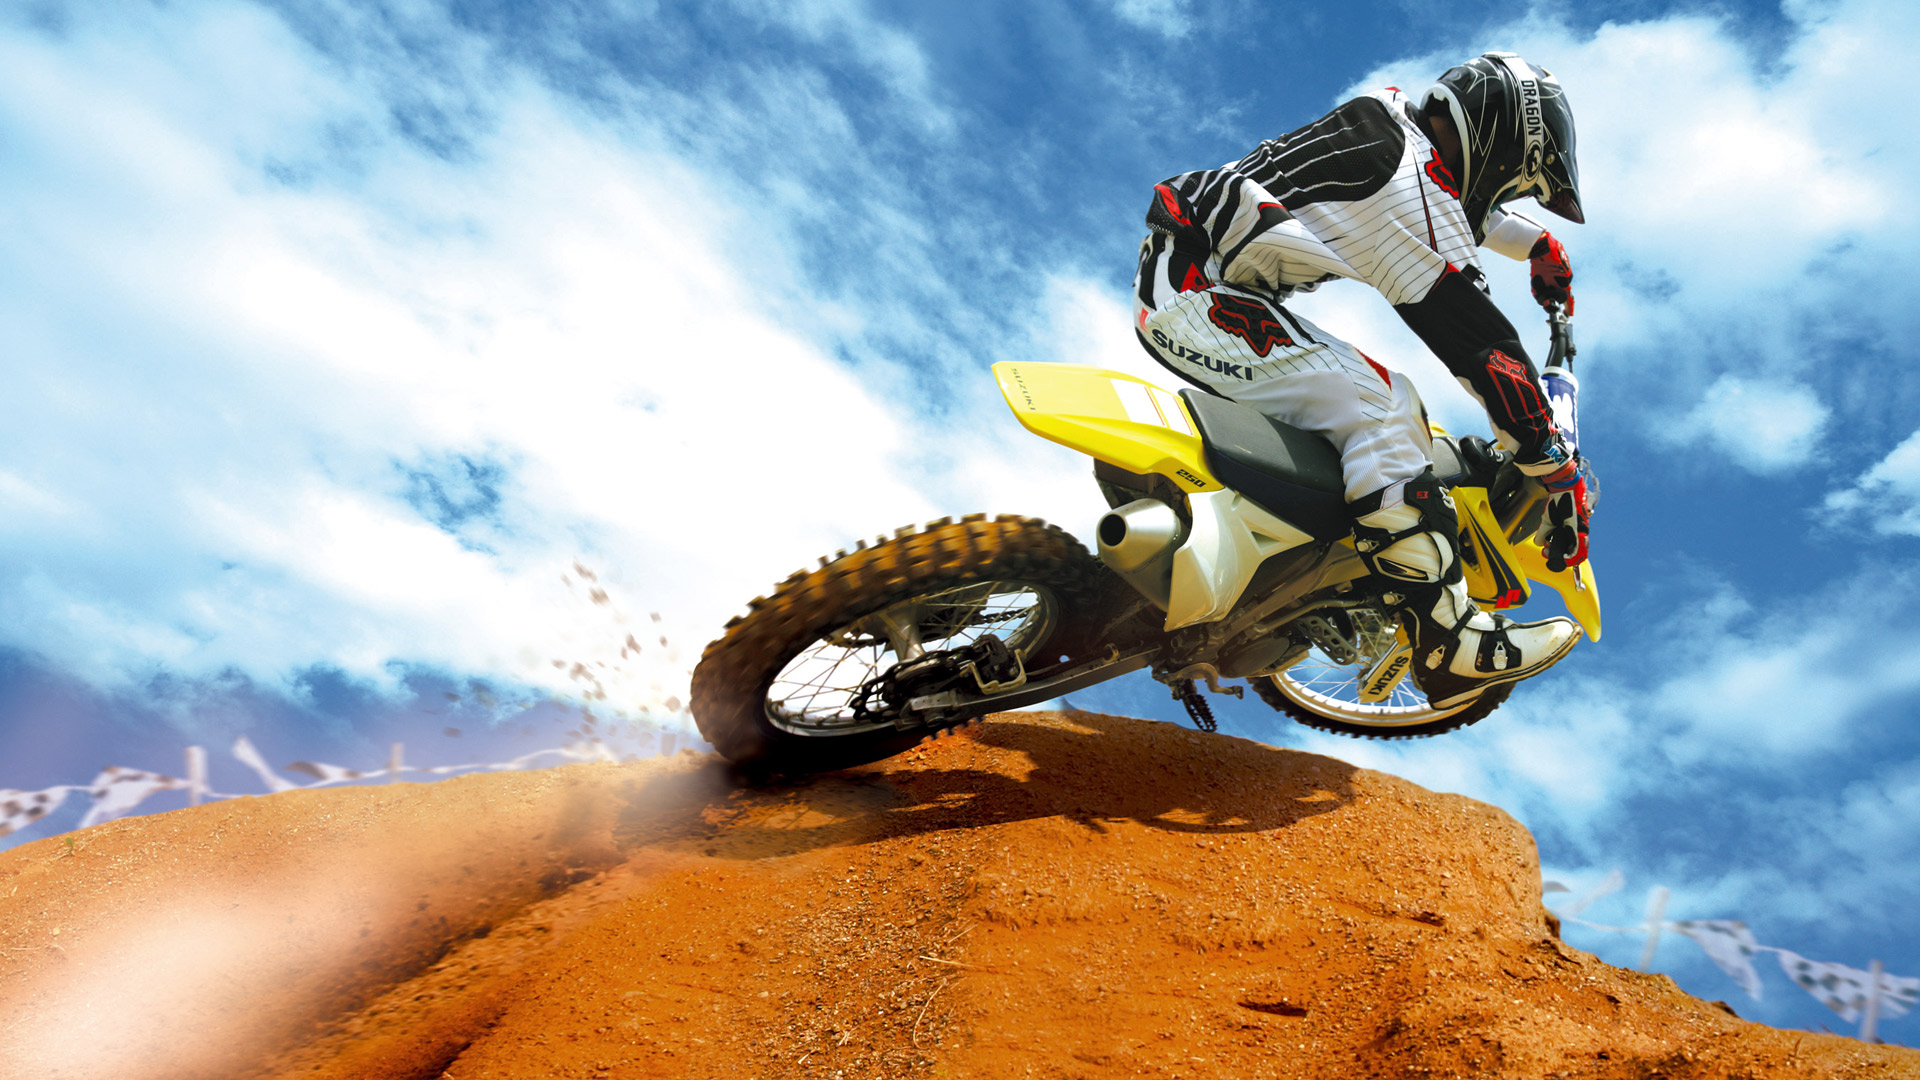 Dirt Bike Wallpaper; Dirt Bike Wallpaper ...